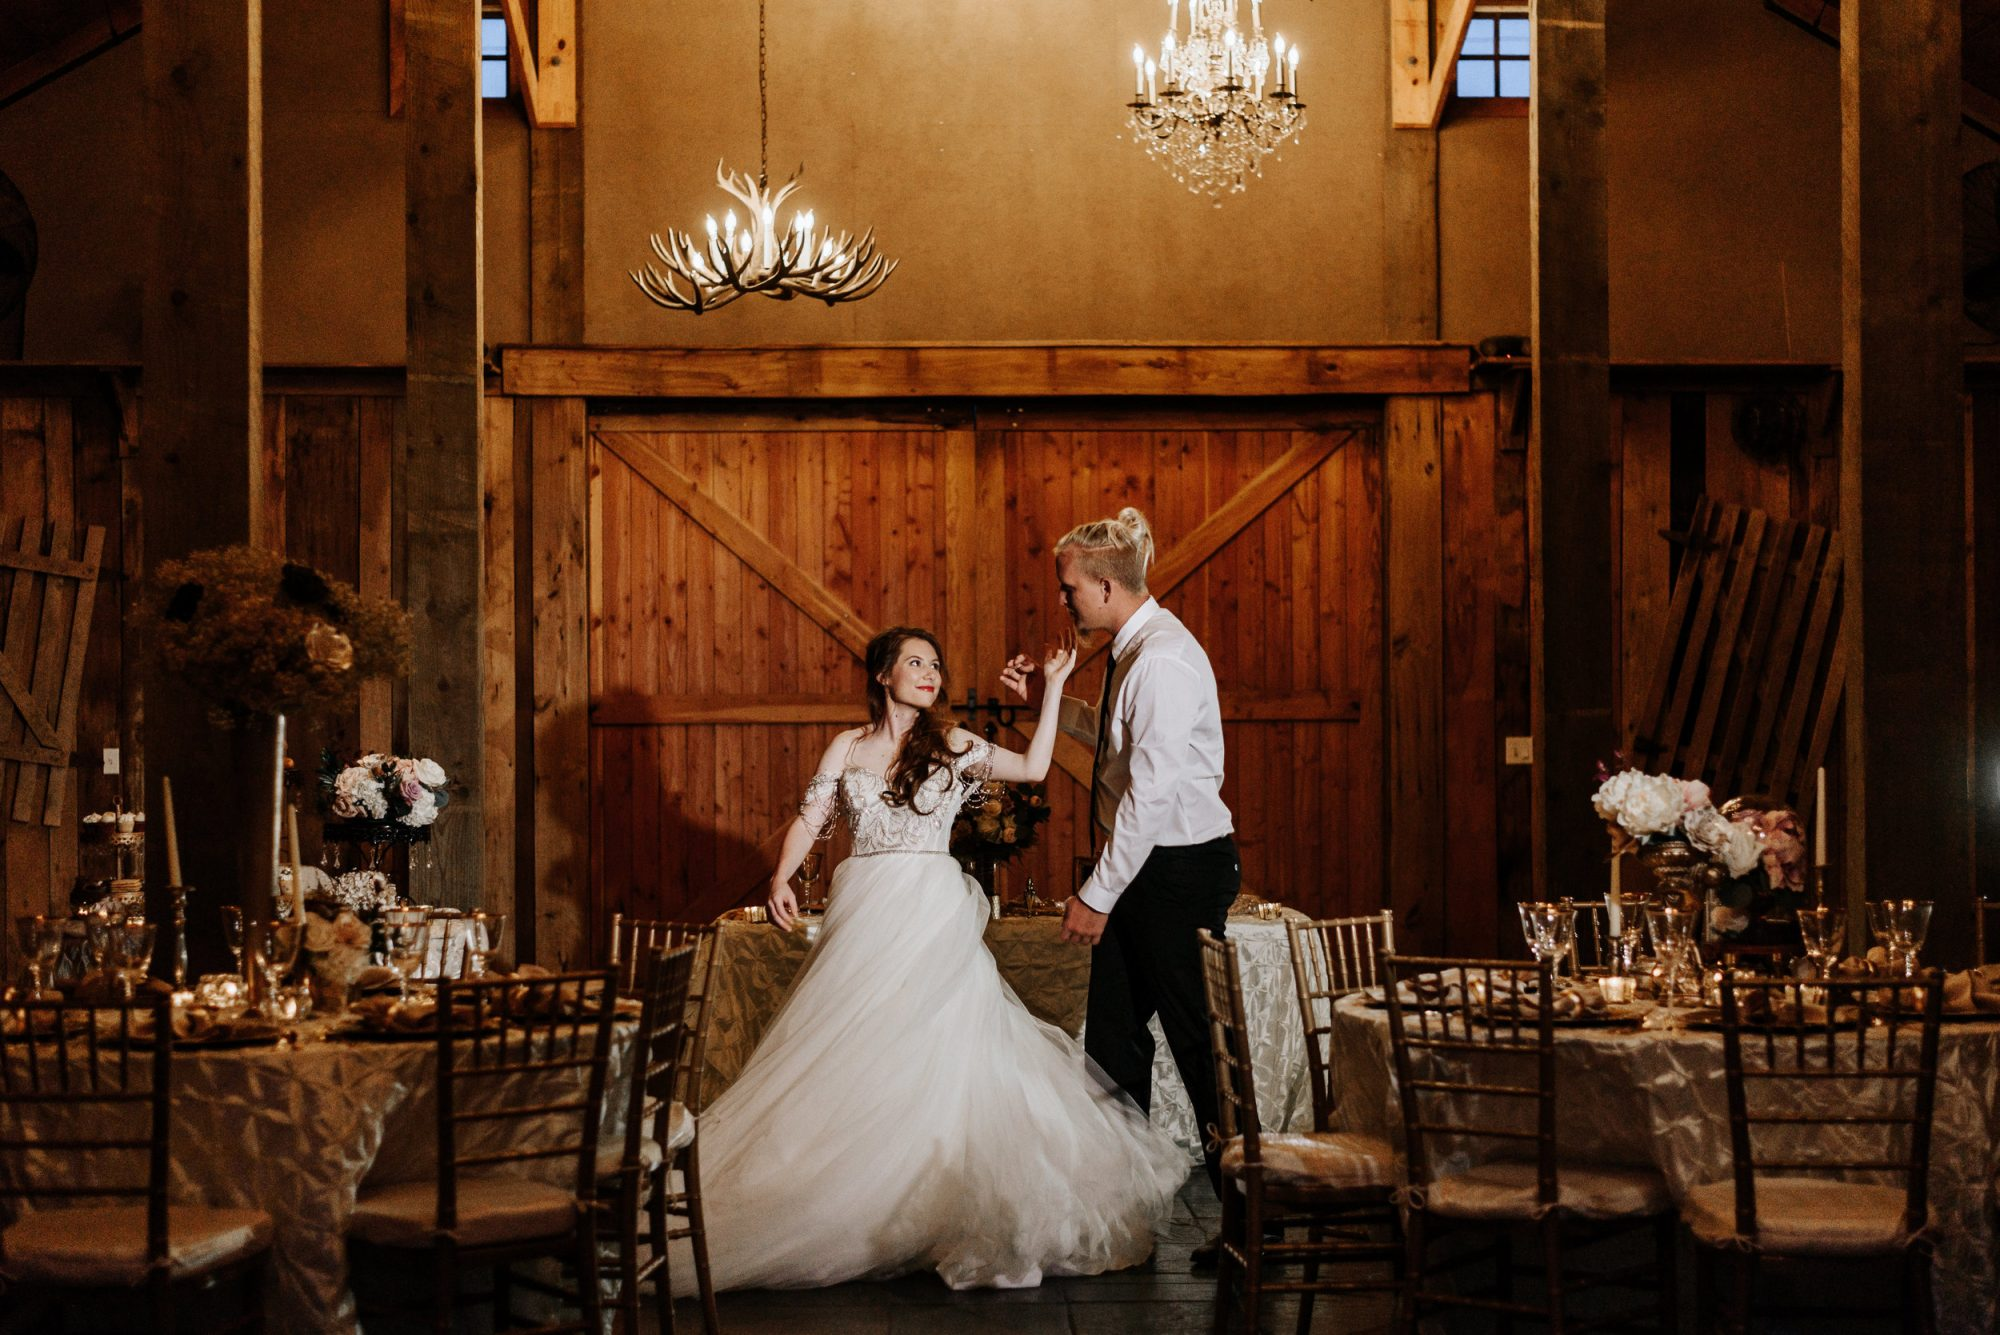 Grant Station Events - bride and groom dancing under chandeliers in rustic barn